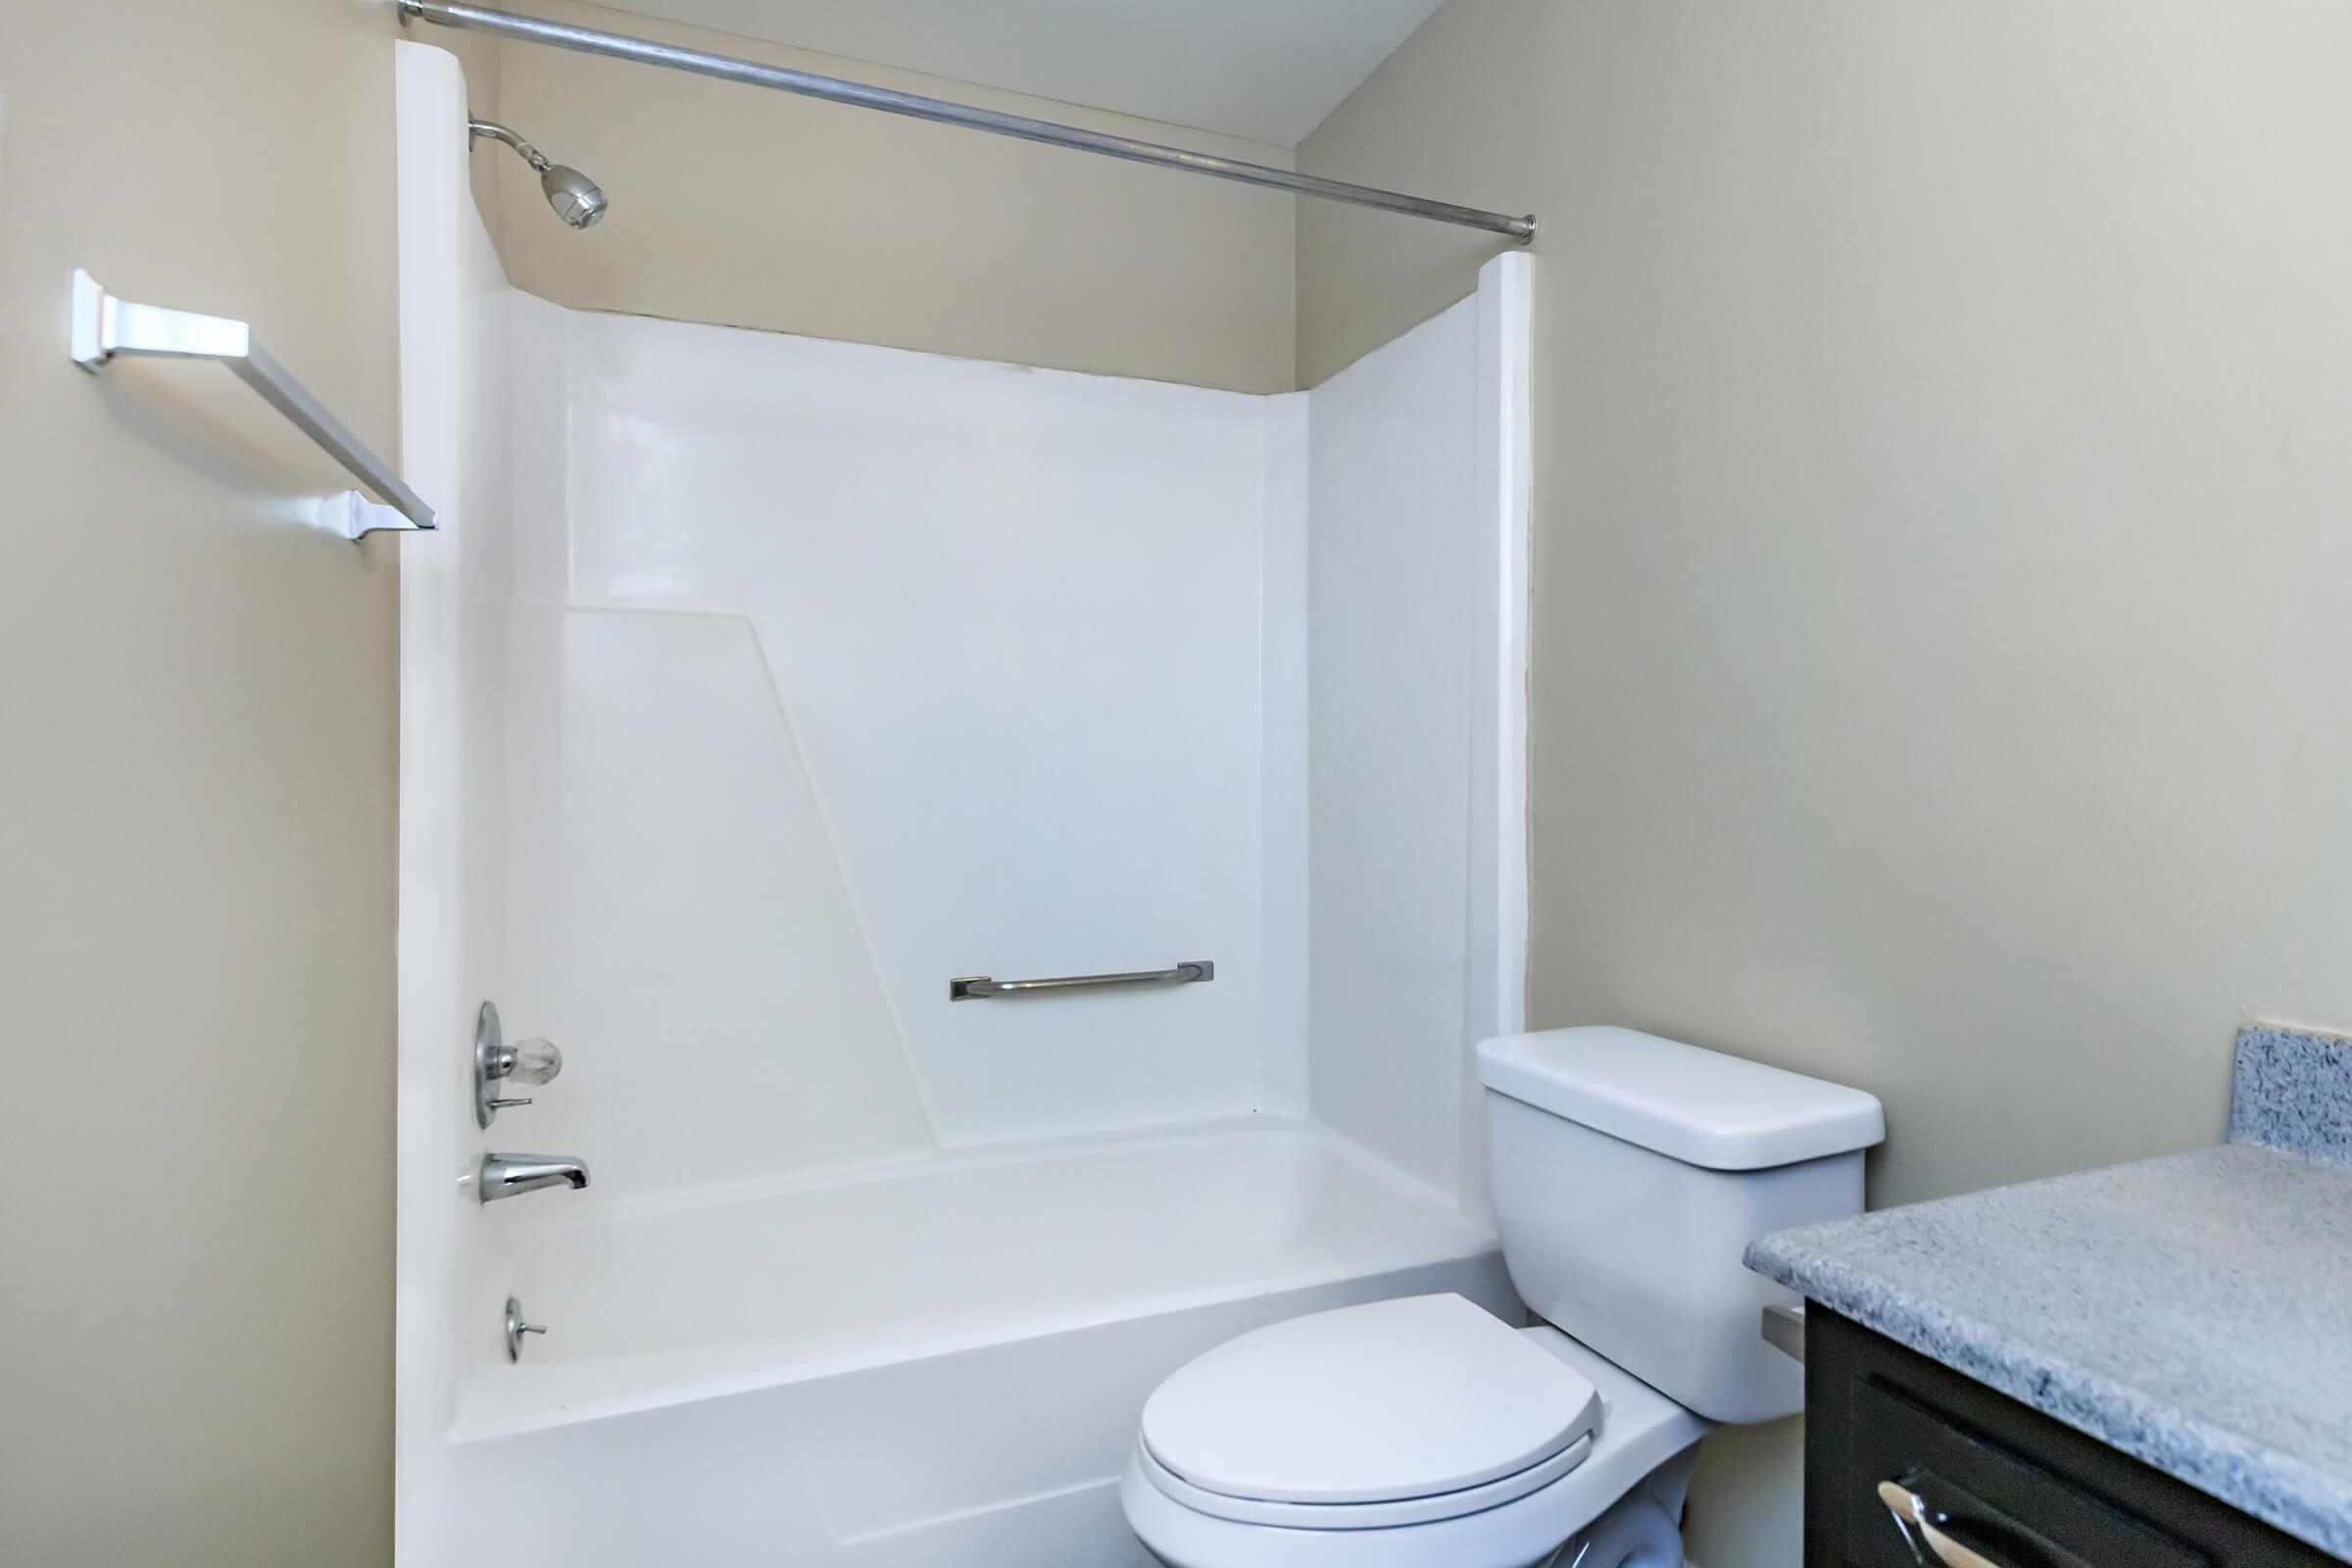 a room with a sink and a bath tub